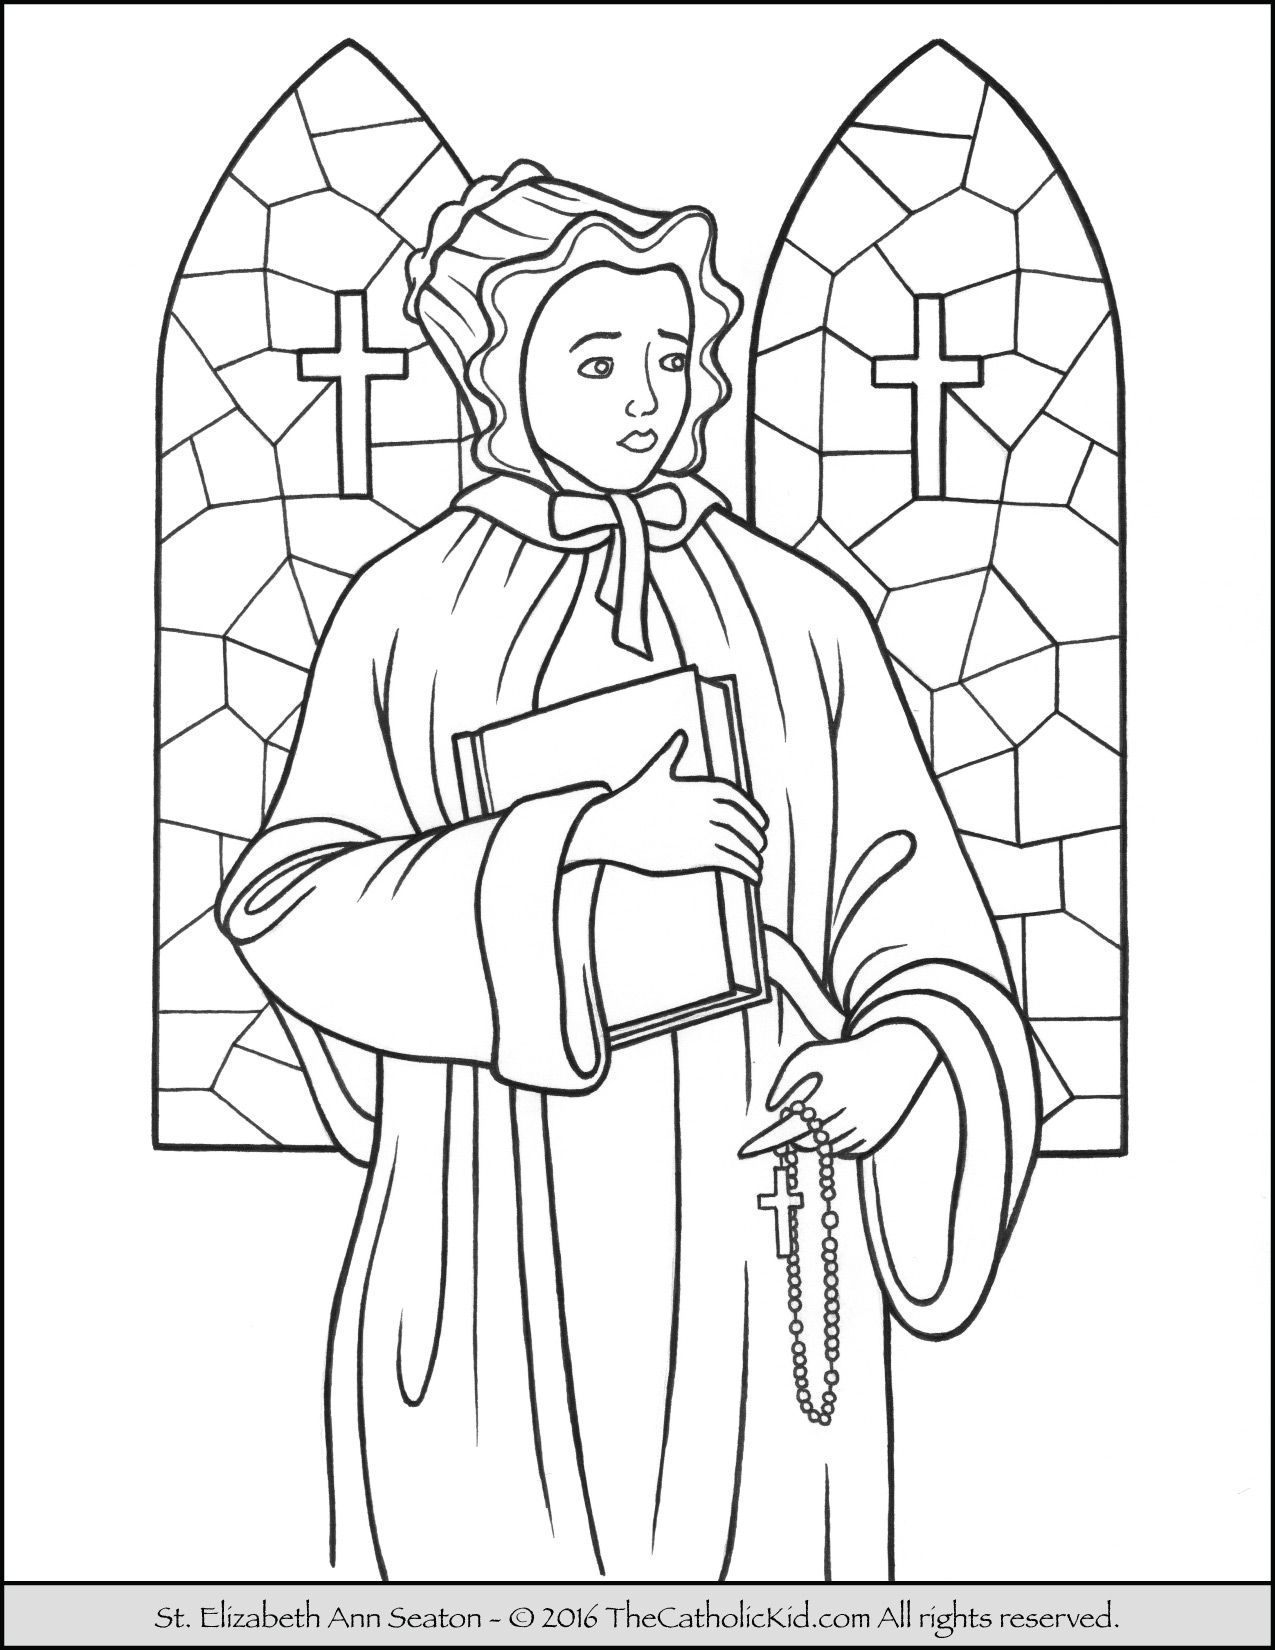 Santa Barbara Mission Coloring Page With Saint Elizabeth Ann Seaton The Catholic Kid